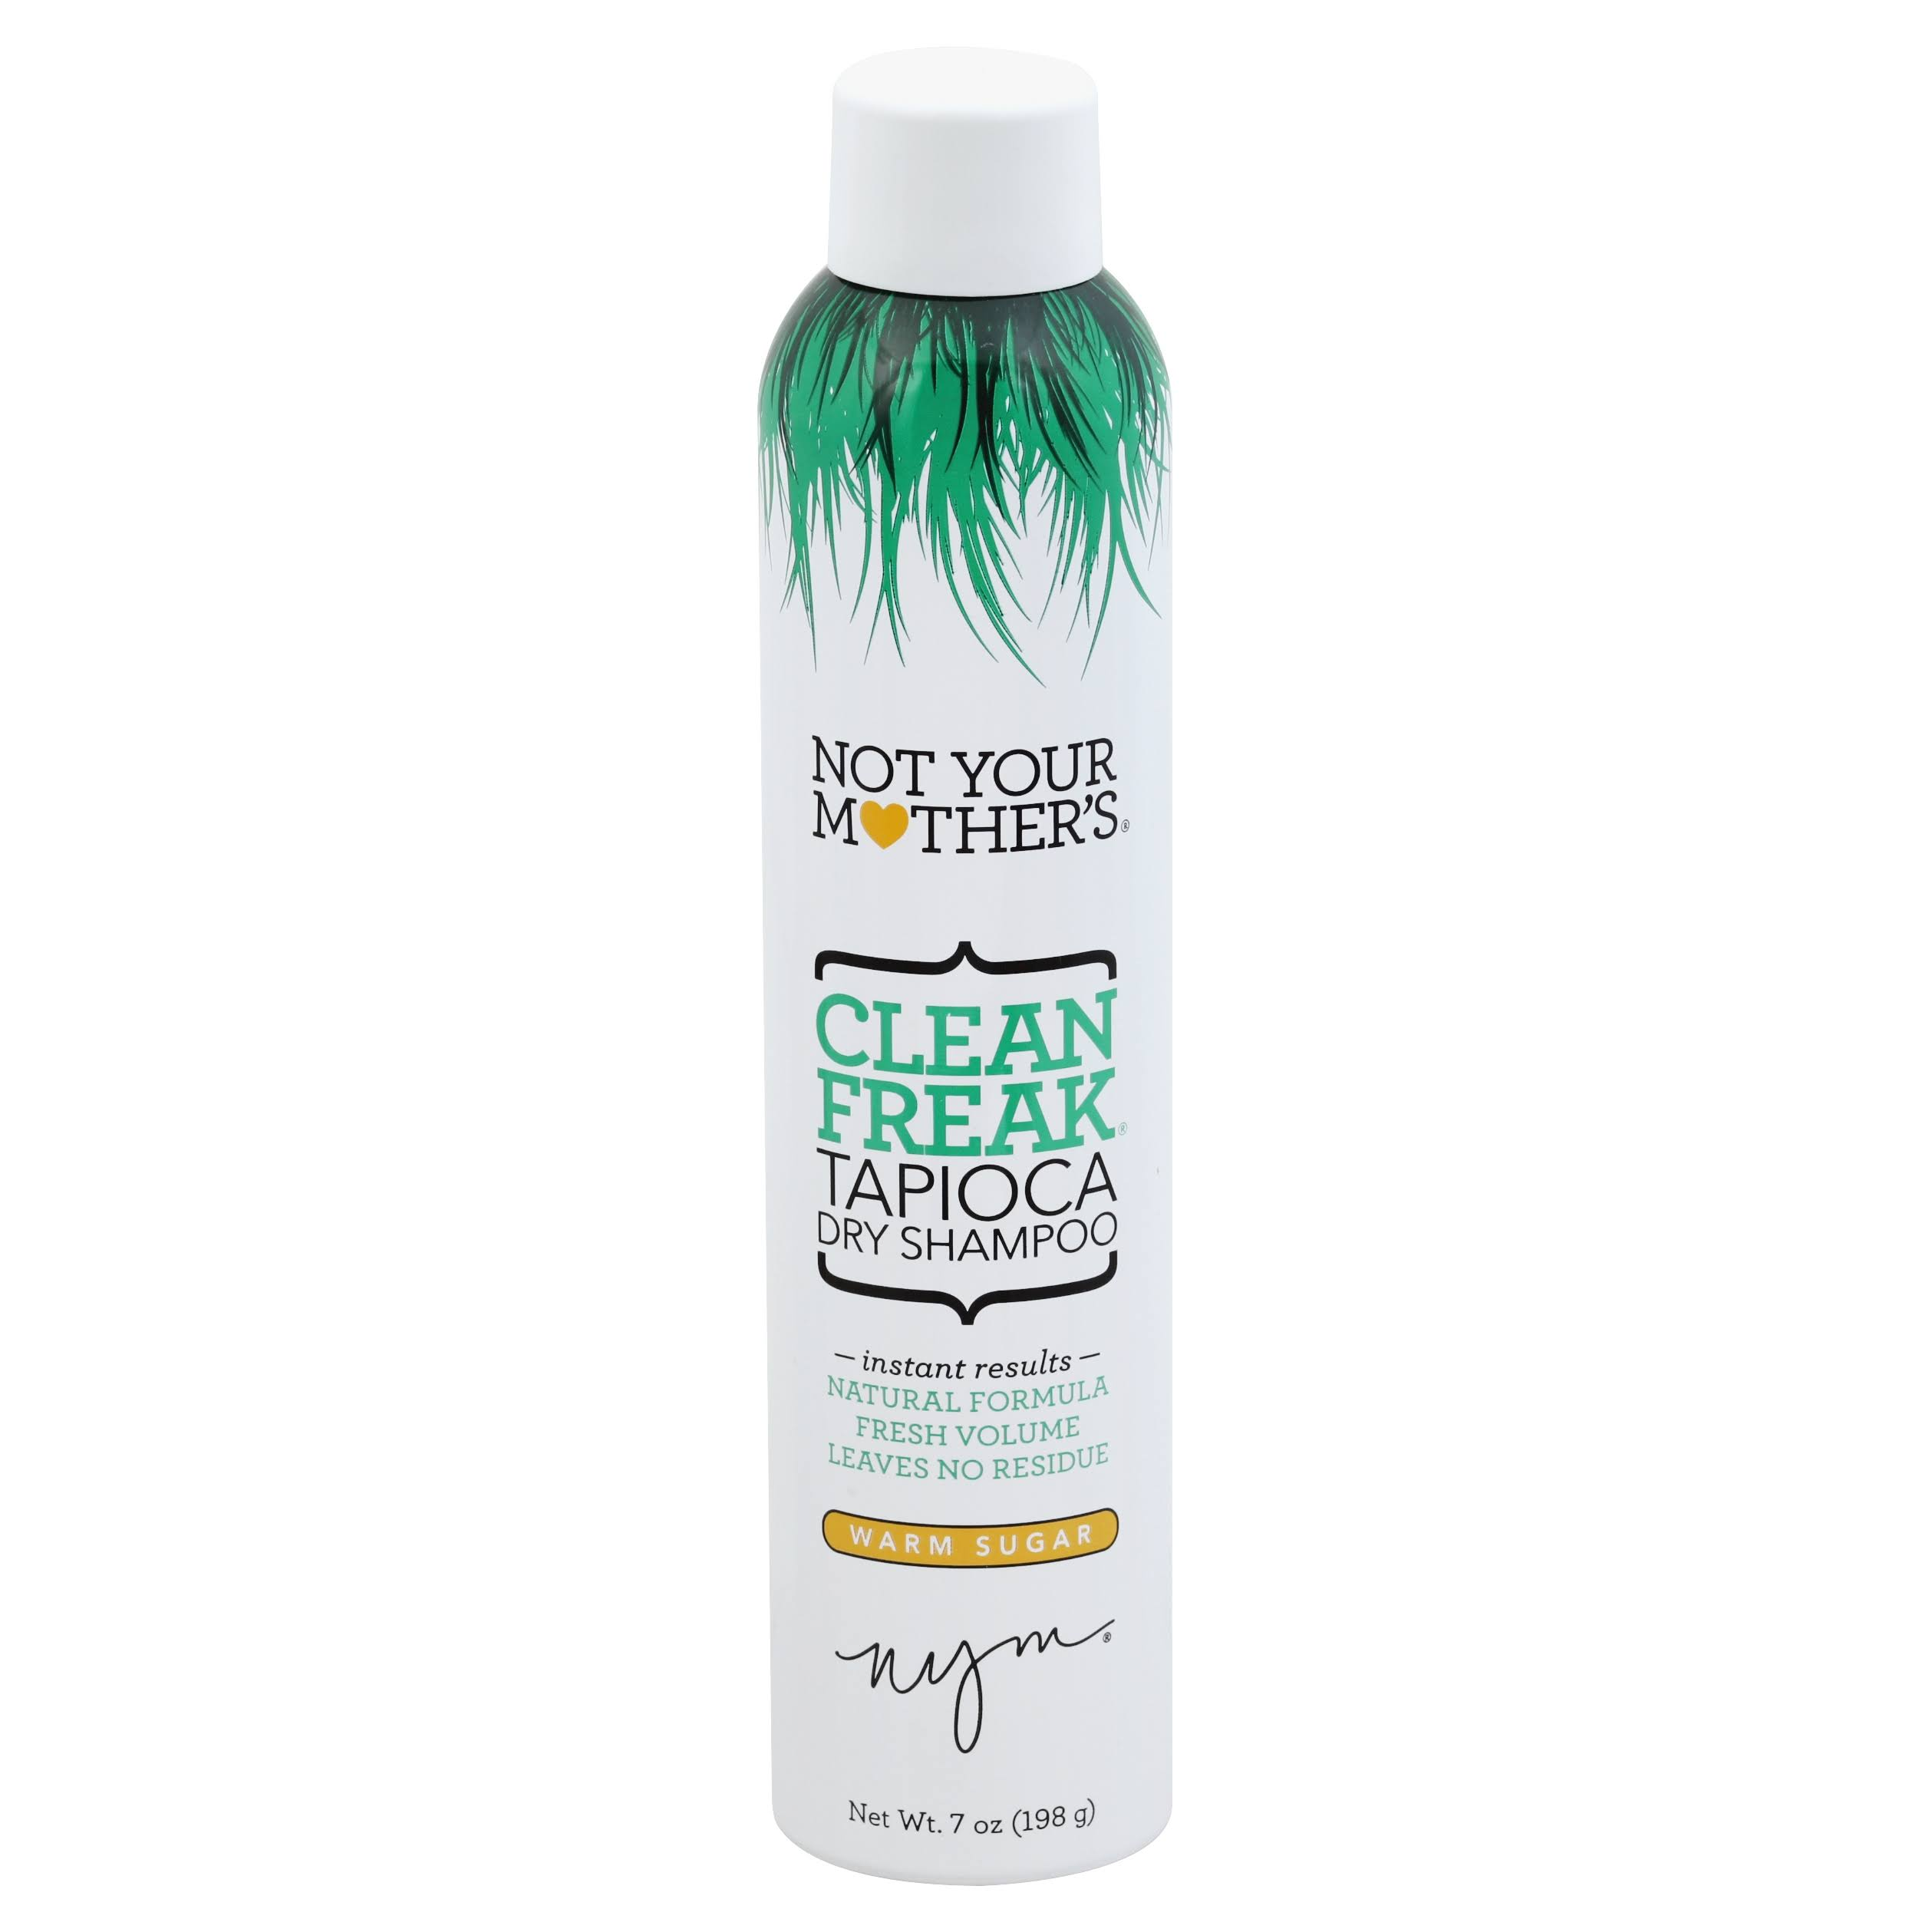 Not Your Mother's Clean Freak Tapioca Dry Shampoo - 7oz